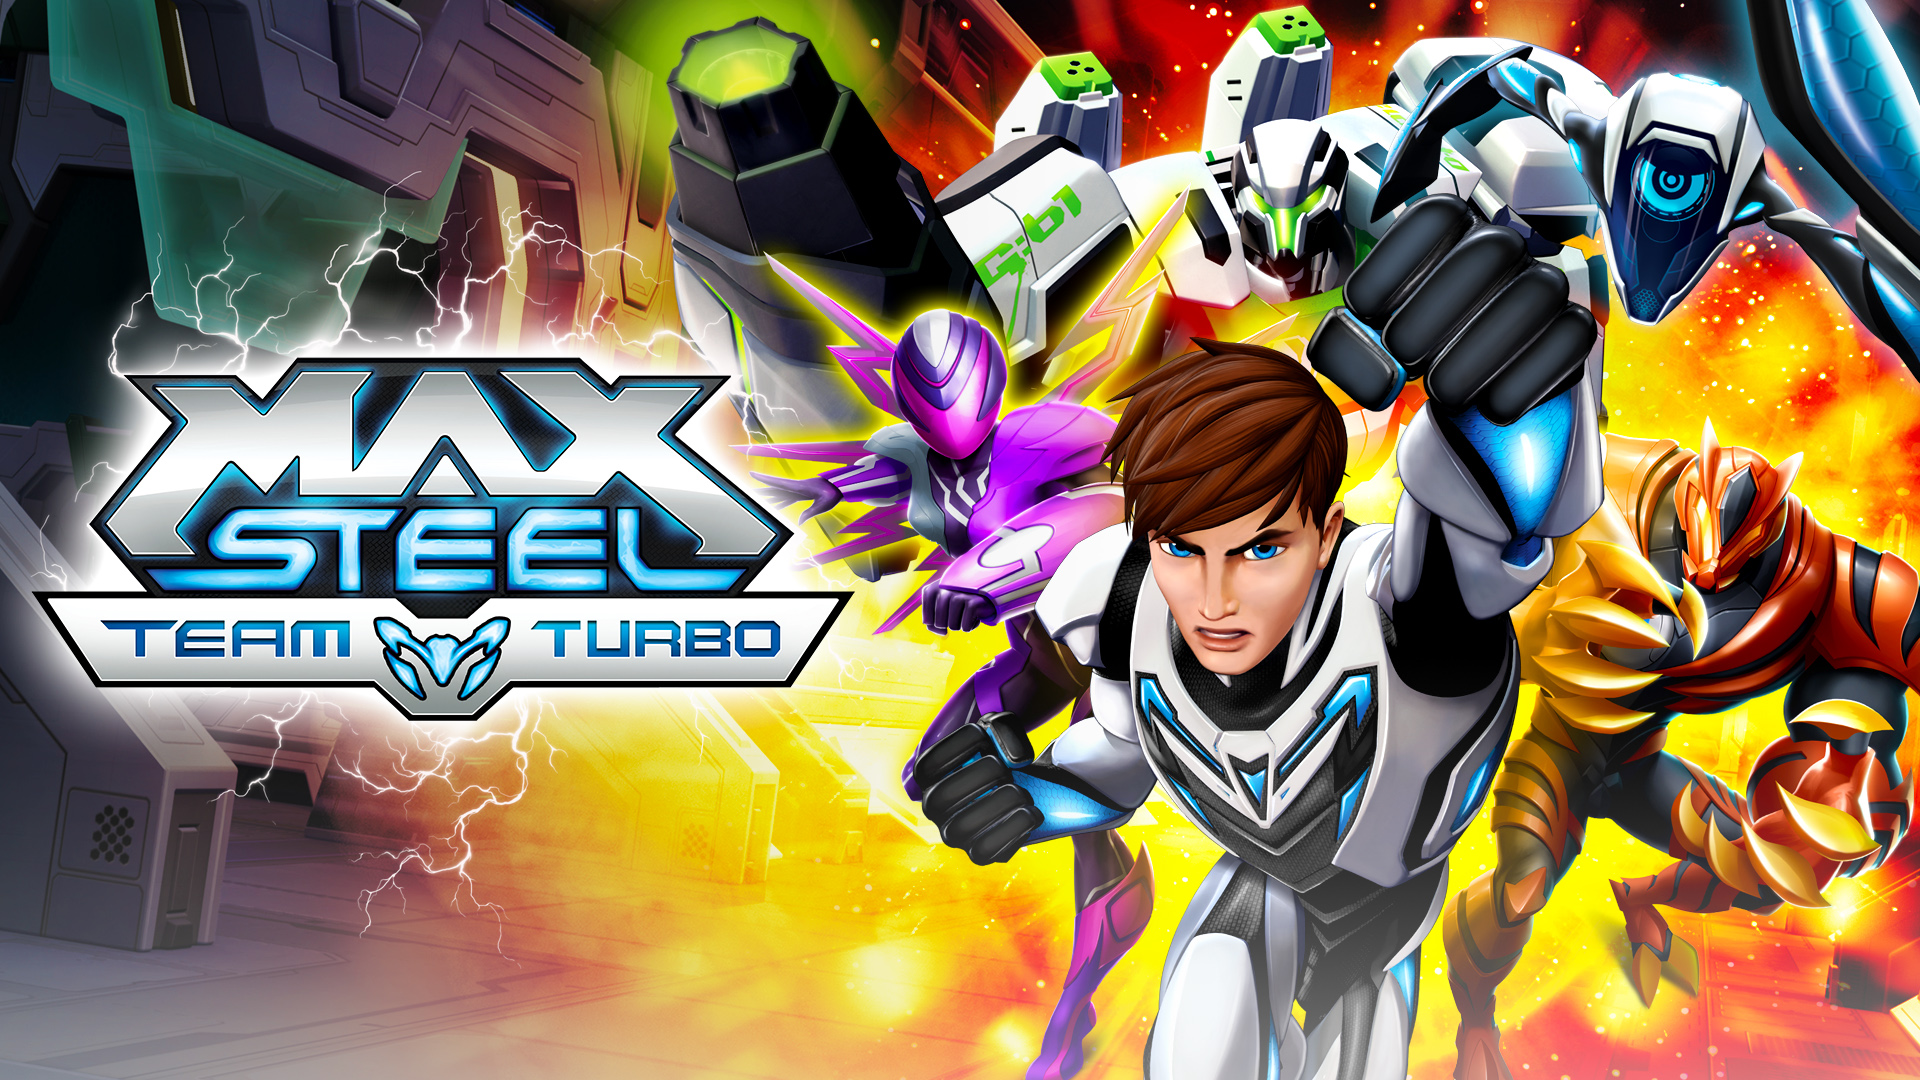 Max Steel Team Turbo